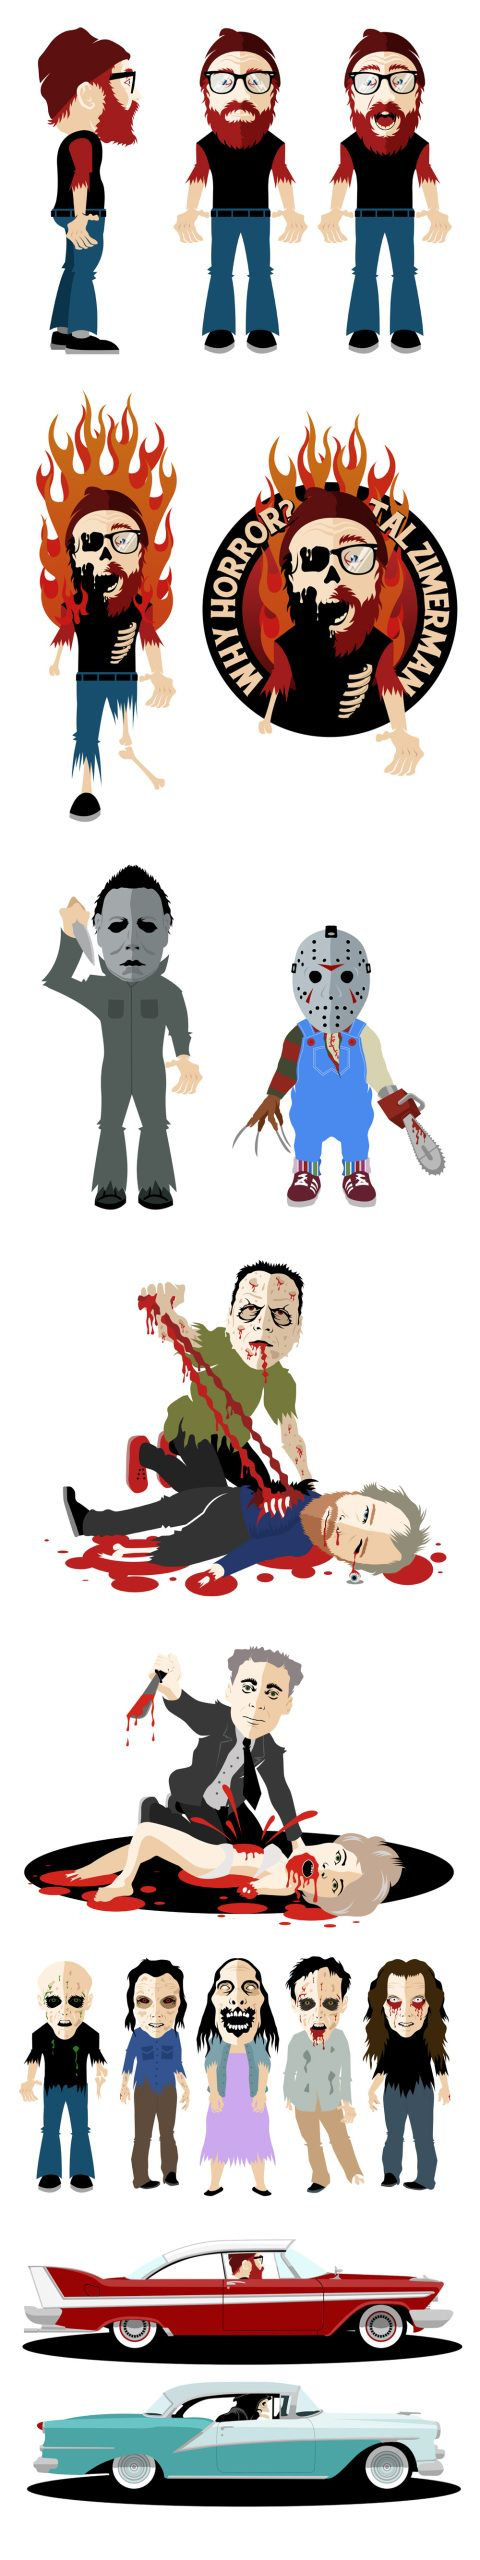 "Illustrated characters for the ""Why Horror"" documentary. www.bofagroup.com"